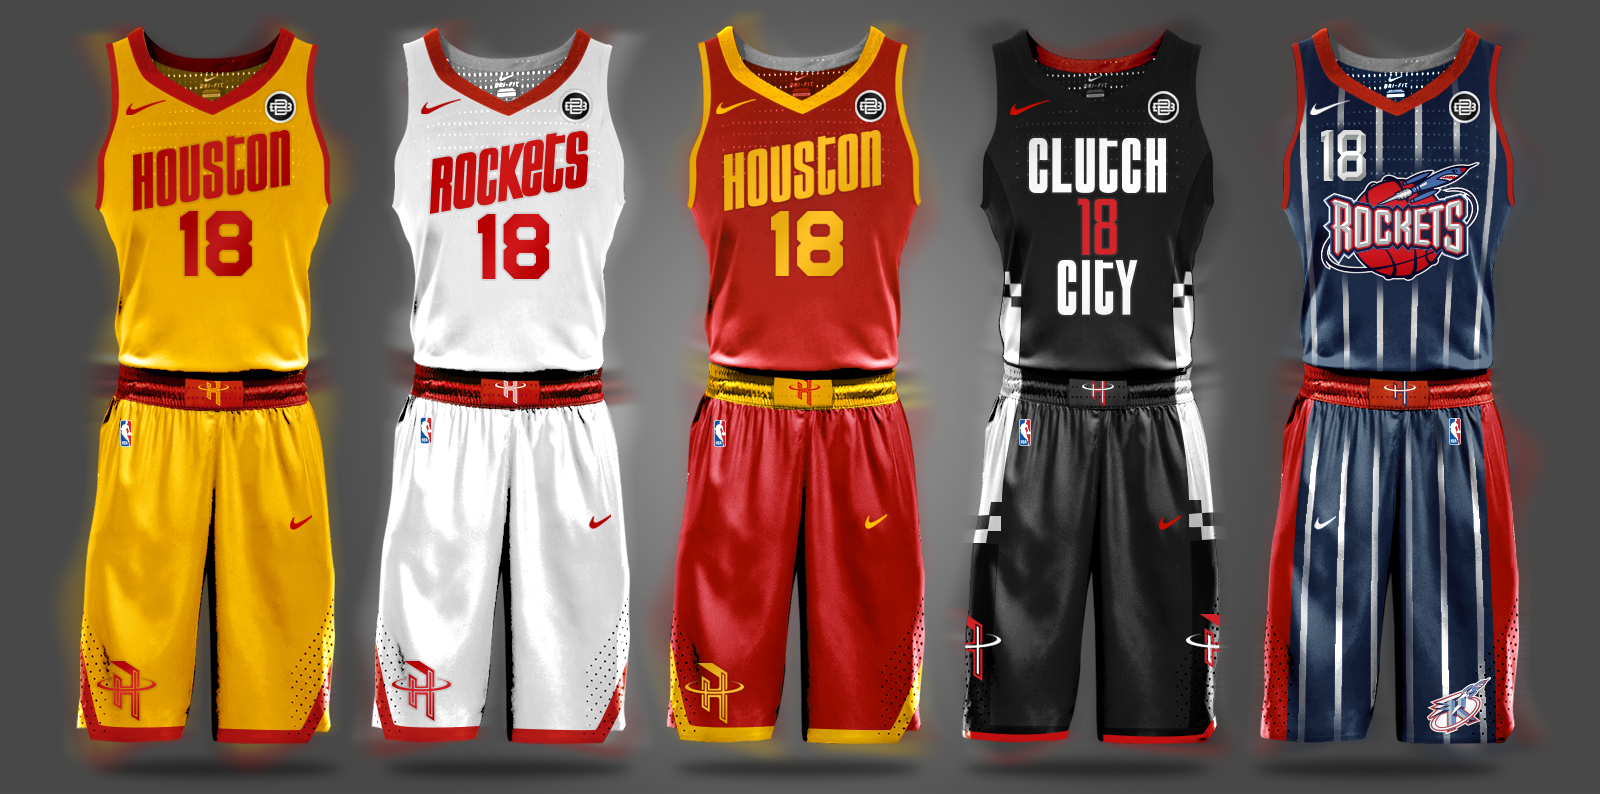 c4a40baa80 houston rockets jersey change